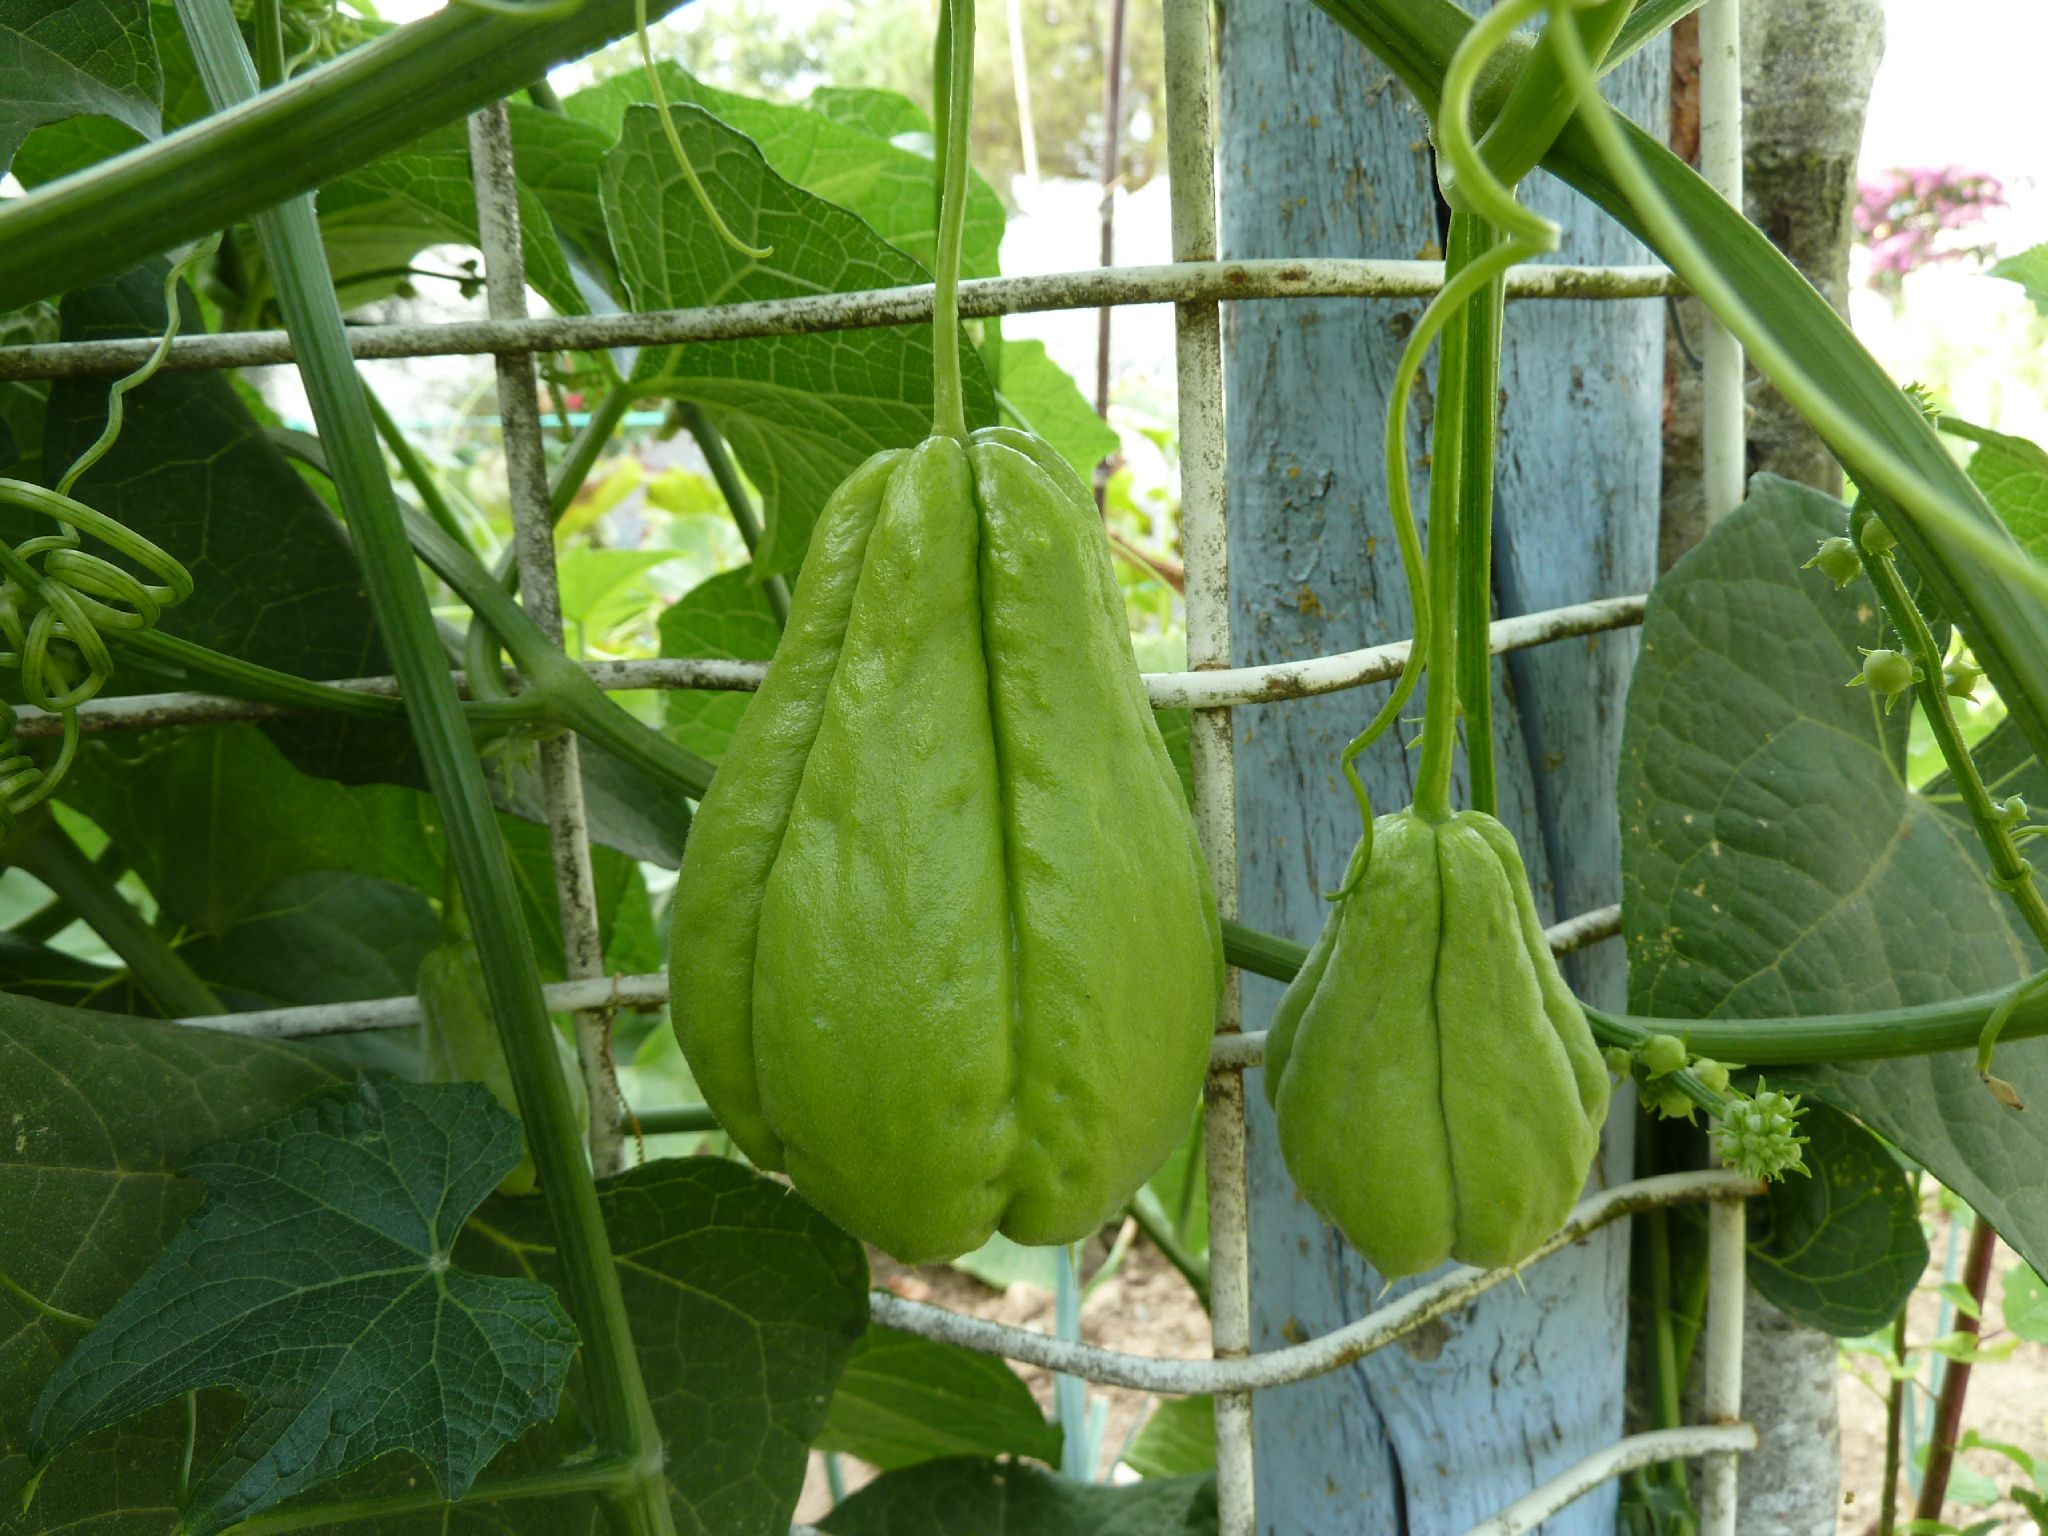 Chayotte ou christophine - www.passionpotager.canalblog.com